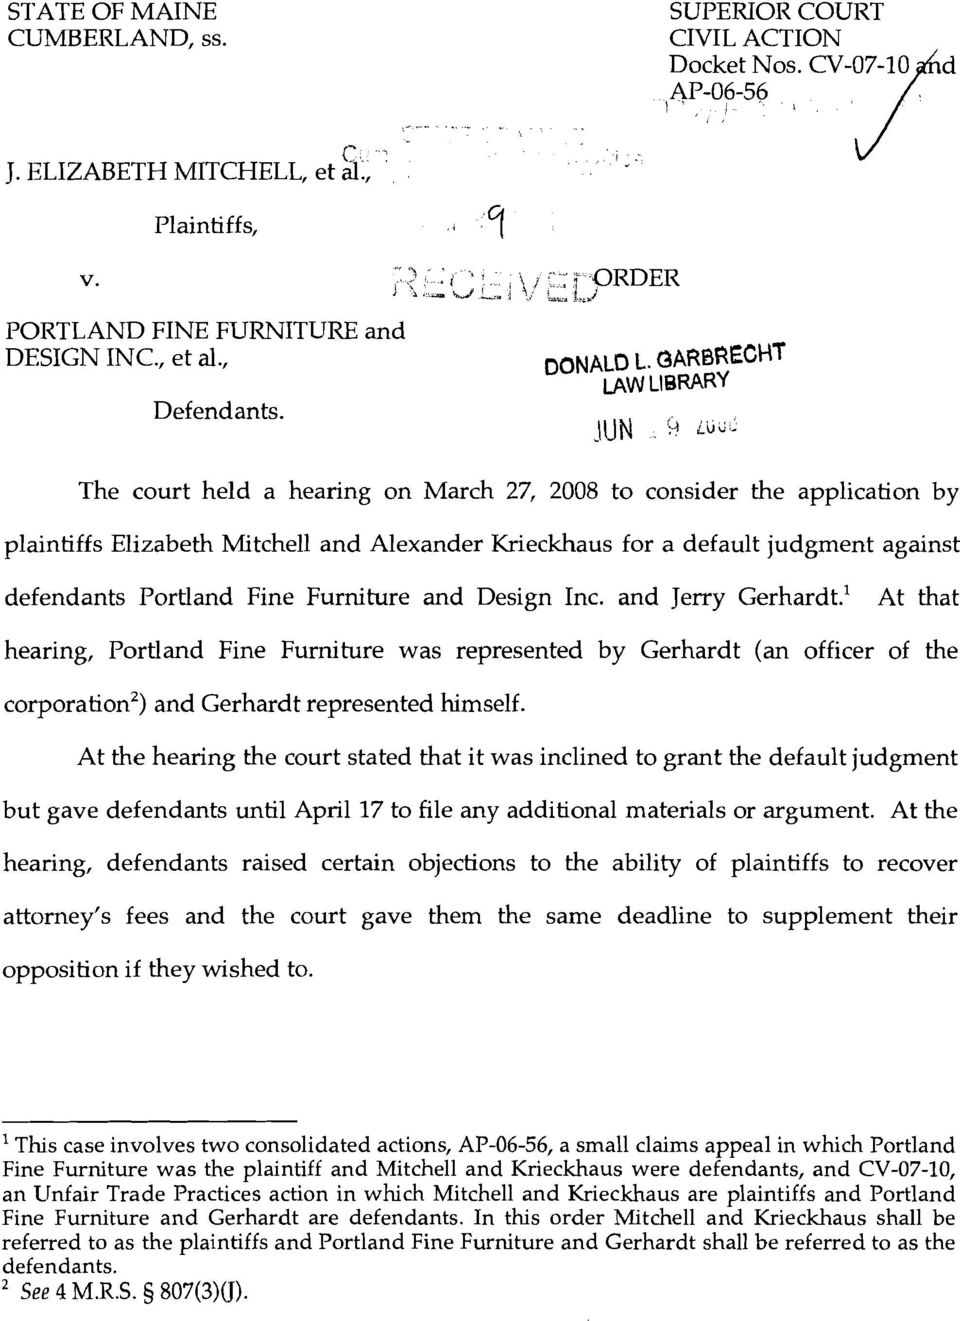 i~ The court held a hearing on March 27, 2008 to consider the application by plaintiffs Elizabeth Mitchell and Alexander Krieckhaus for a default judgment against defendants Portland Fine Furniture